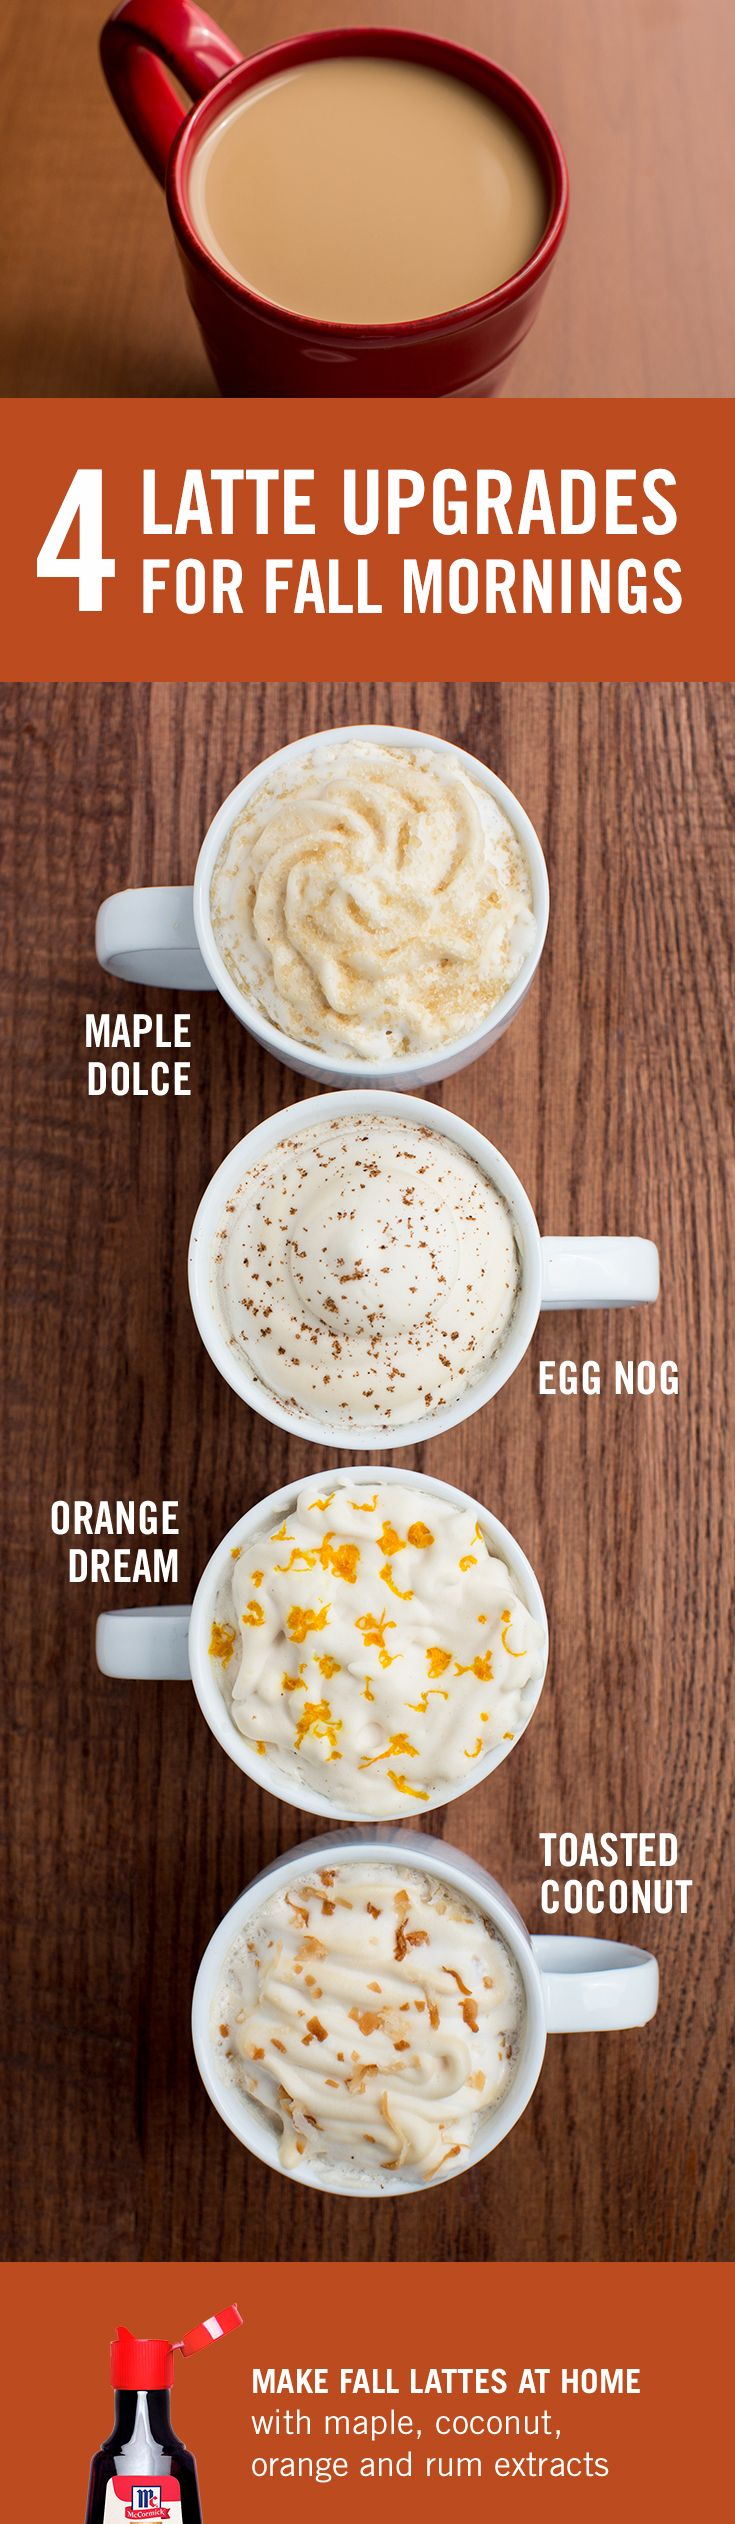 Cozy fall mornings call for a huge, frothy latte (comfy sweater optional). Try these easy seasonal latte recipes made with McCormick maple, orange, coconut or rum extracts. No corn syrup or GMOs, ever.